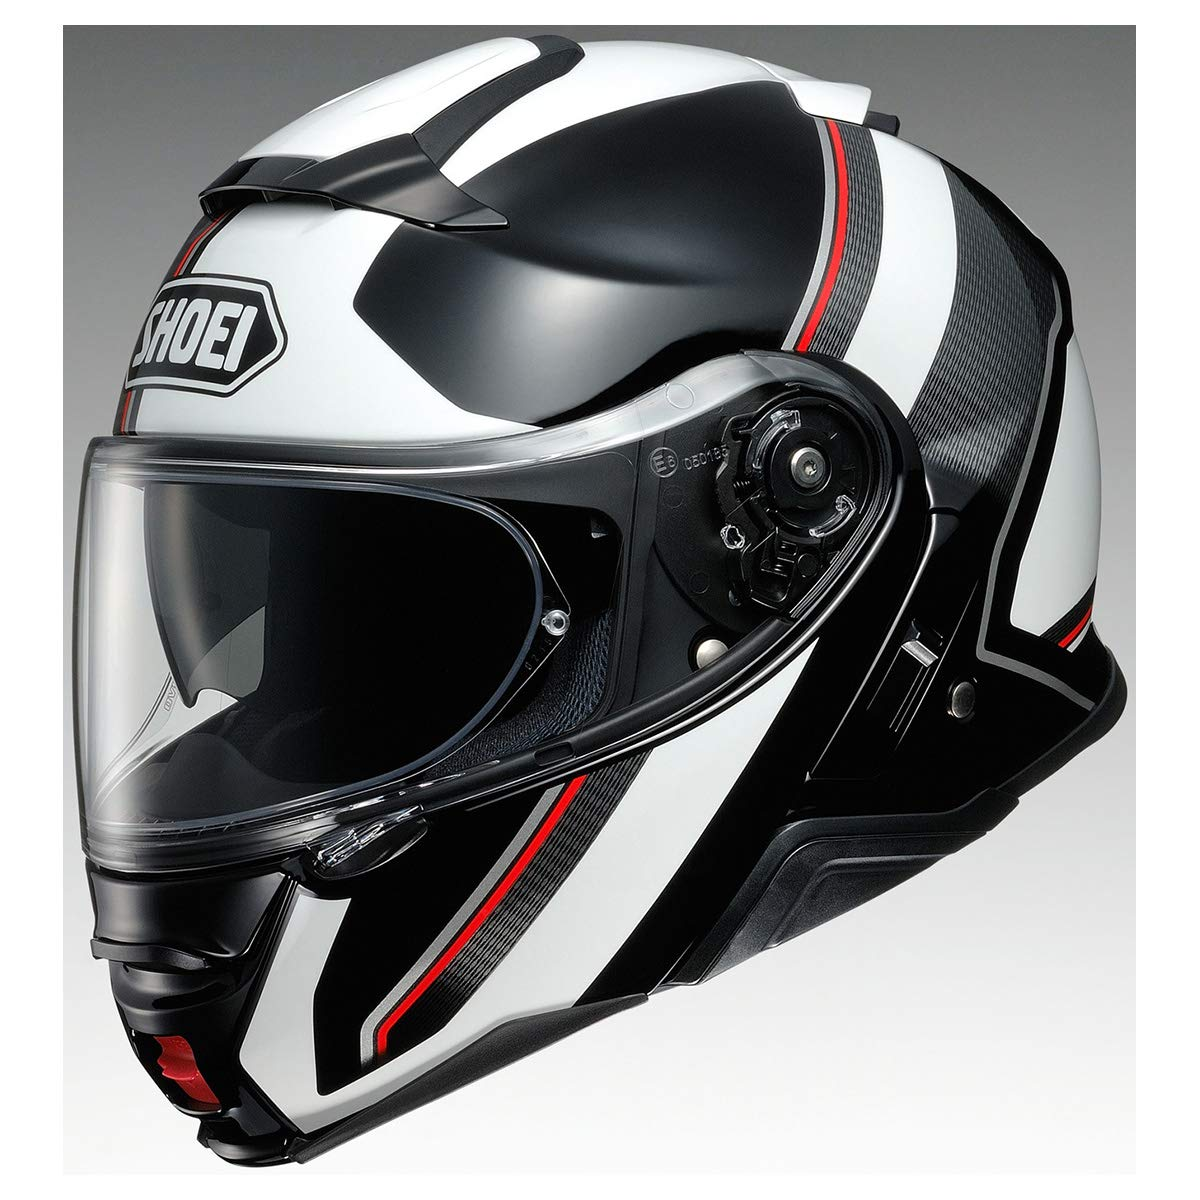 clearance sale the sale of shoes lowest discount Amazon.com: Shoei Neotec II Helmet - Excursion (Small) (White ...